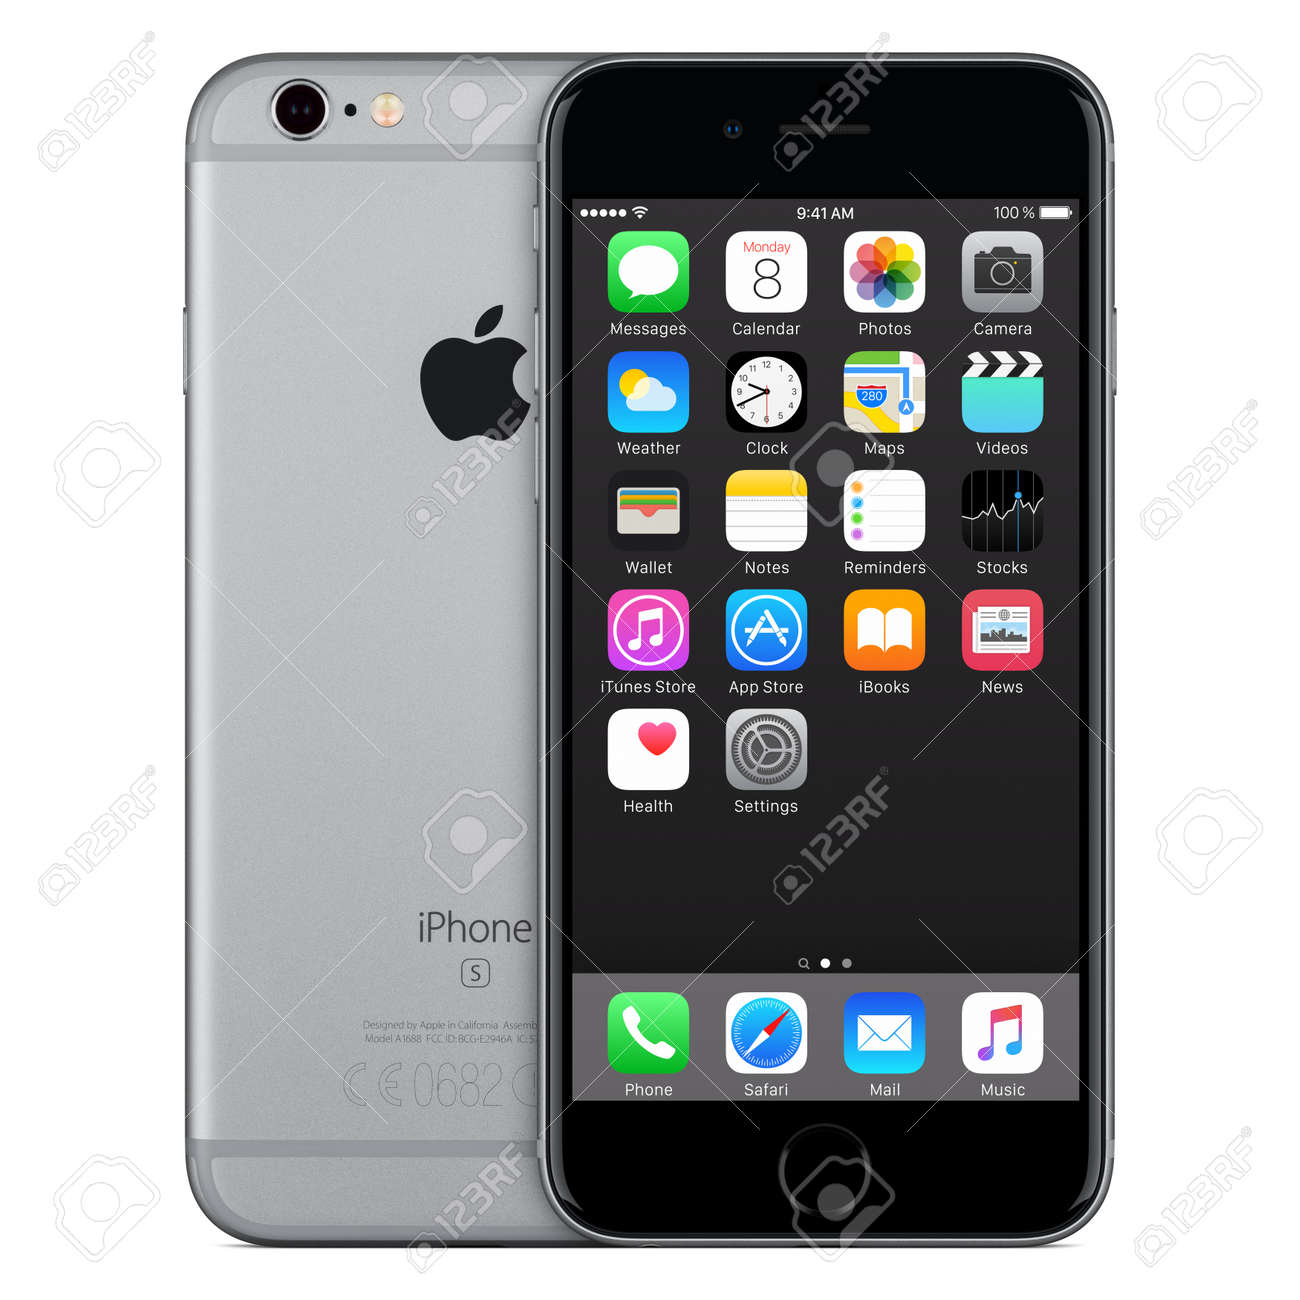 Varna, Bulgaria - October 24, 2015: Front view of Space Gray Apple iPhone 6S with iOS 9 mobile operating system and back side with Apple Inc logo. Isolated on white. - 51147179